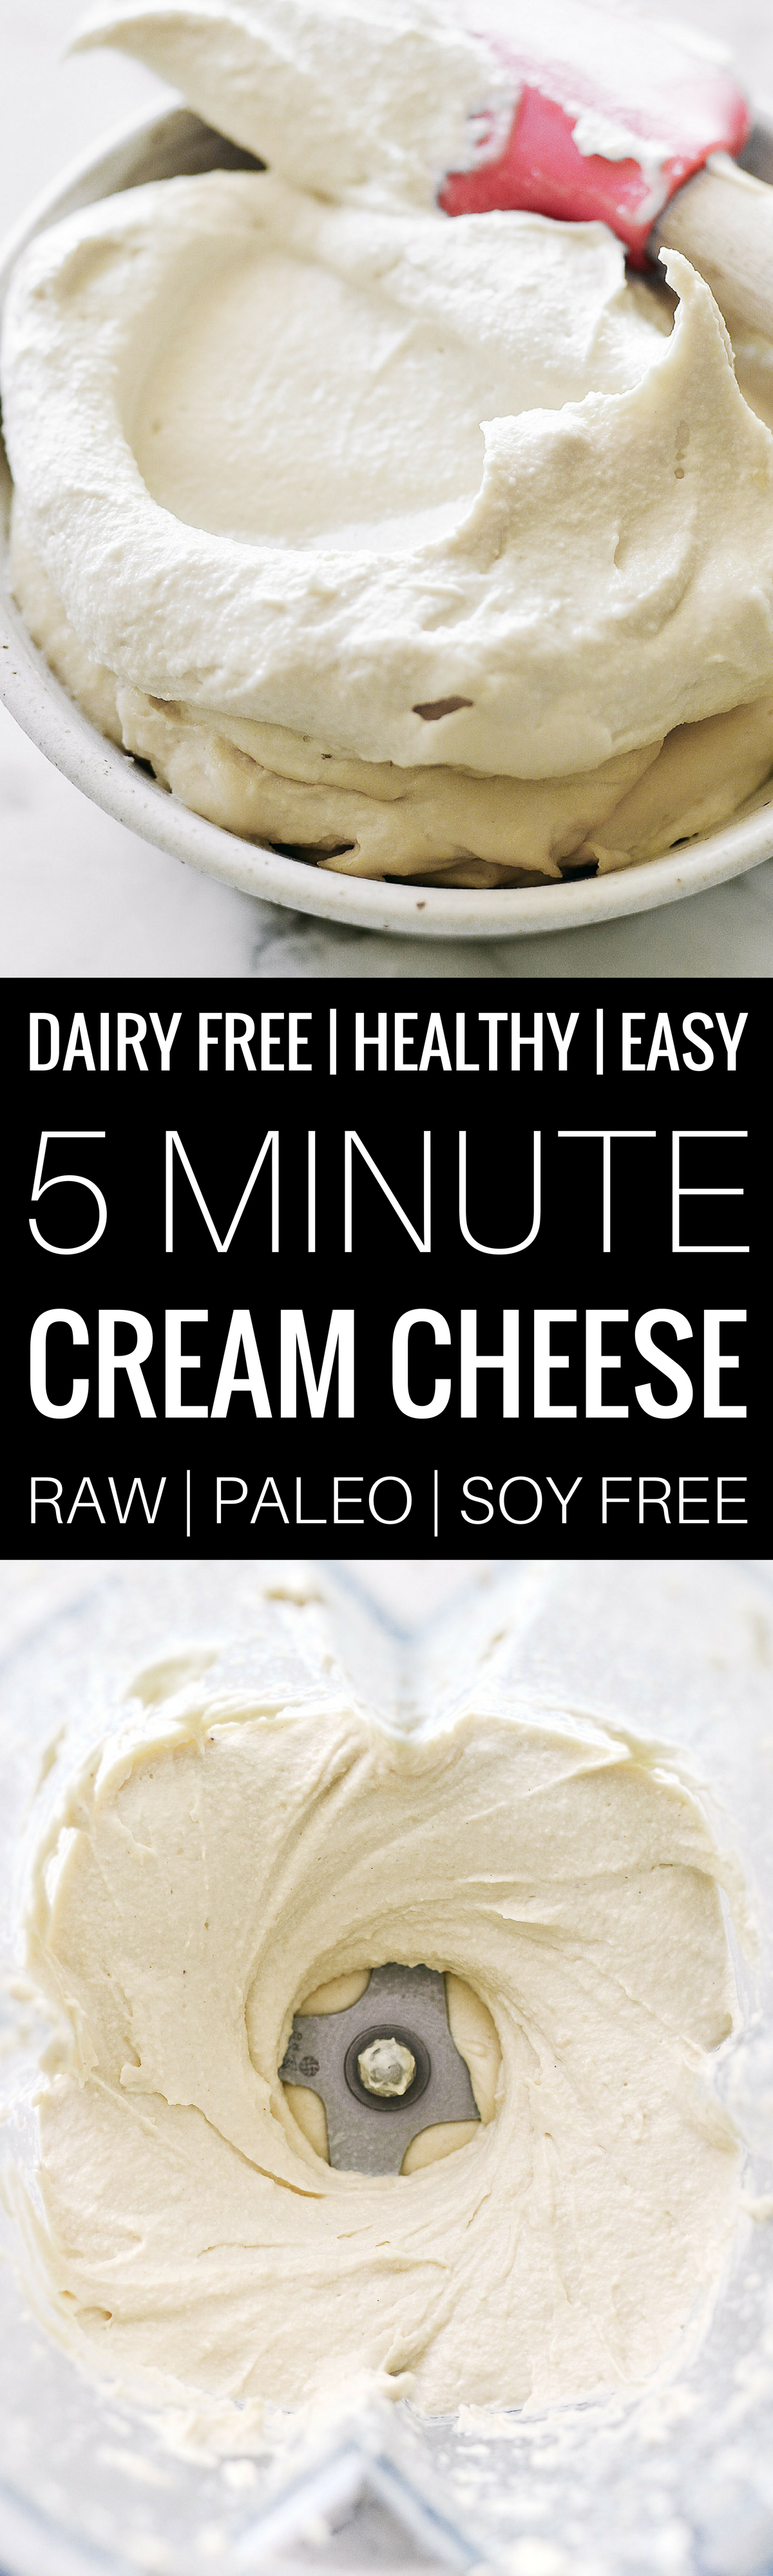 Easy dairy free, vegan, and paleo cream cheese recipe. Soy free, made in 5 minutes, and able to store in the fridge for 1 week. Addictively creamy and a perfect addition to any recipe- savory or sweet! Paleo cream cheese recipe. Easy paleo cheese recipe. Dairy free cheese recipe. Cashew cream cheese recipe. Best cashew cheese recipe. Easy vegan cheese recipe. Best dairy free cheese ideas. Dairy free cream cheese. Best paleo raw dairy free cheese. raw cheese recipes. cashew cheese recipes.